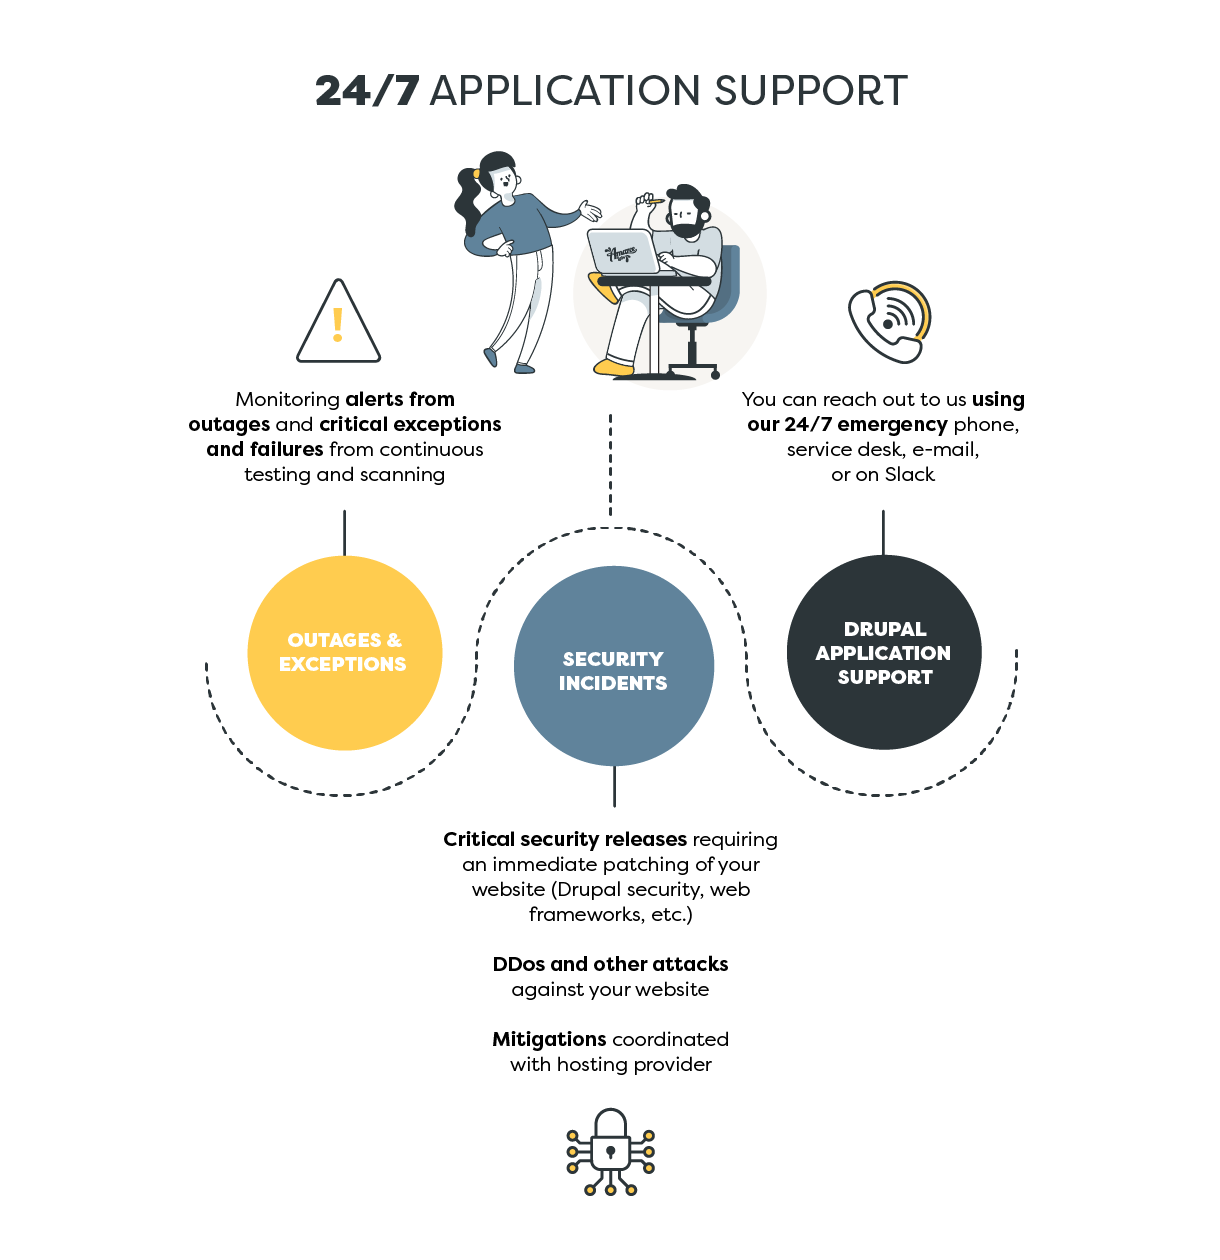 24/7 Application Support includes Outages and Exceptions, Security Incidents, and Drupal Application Suppport